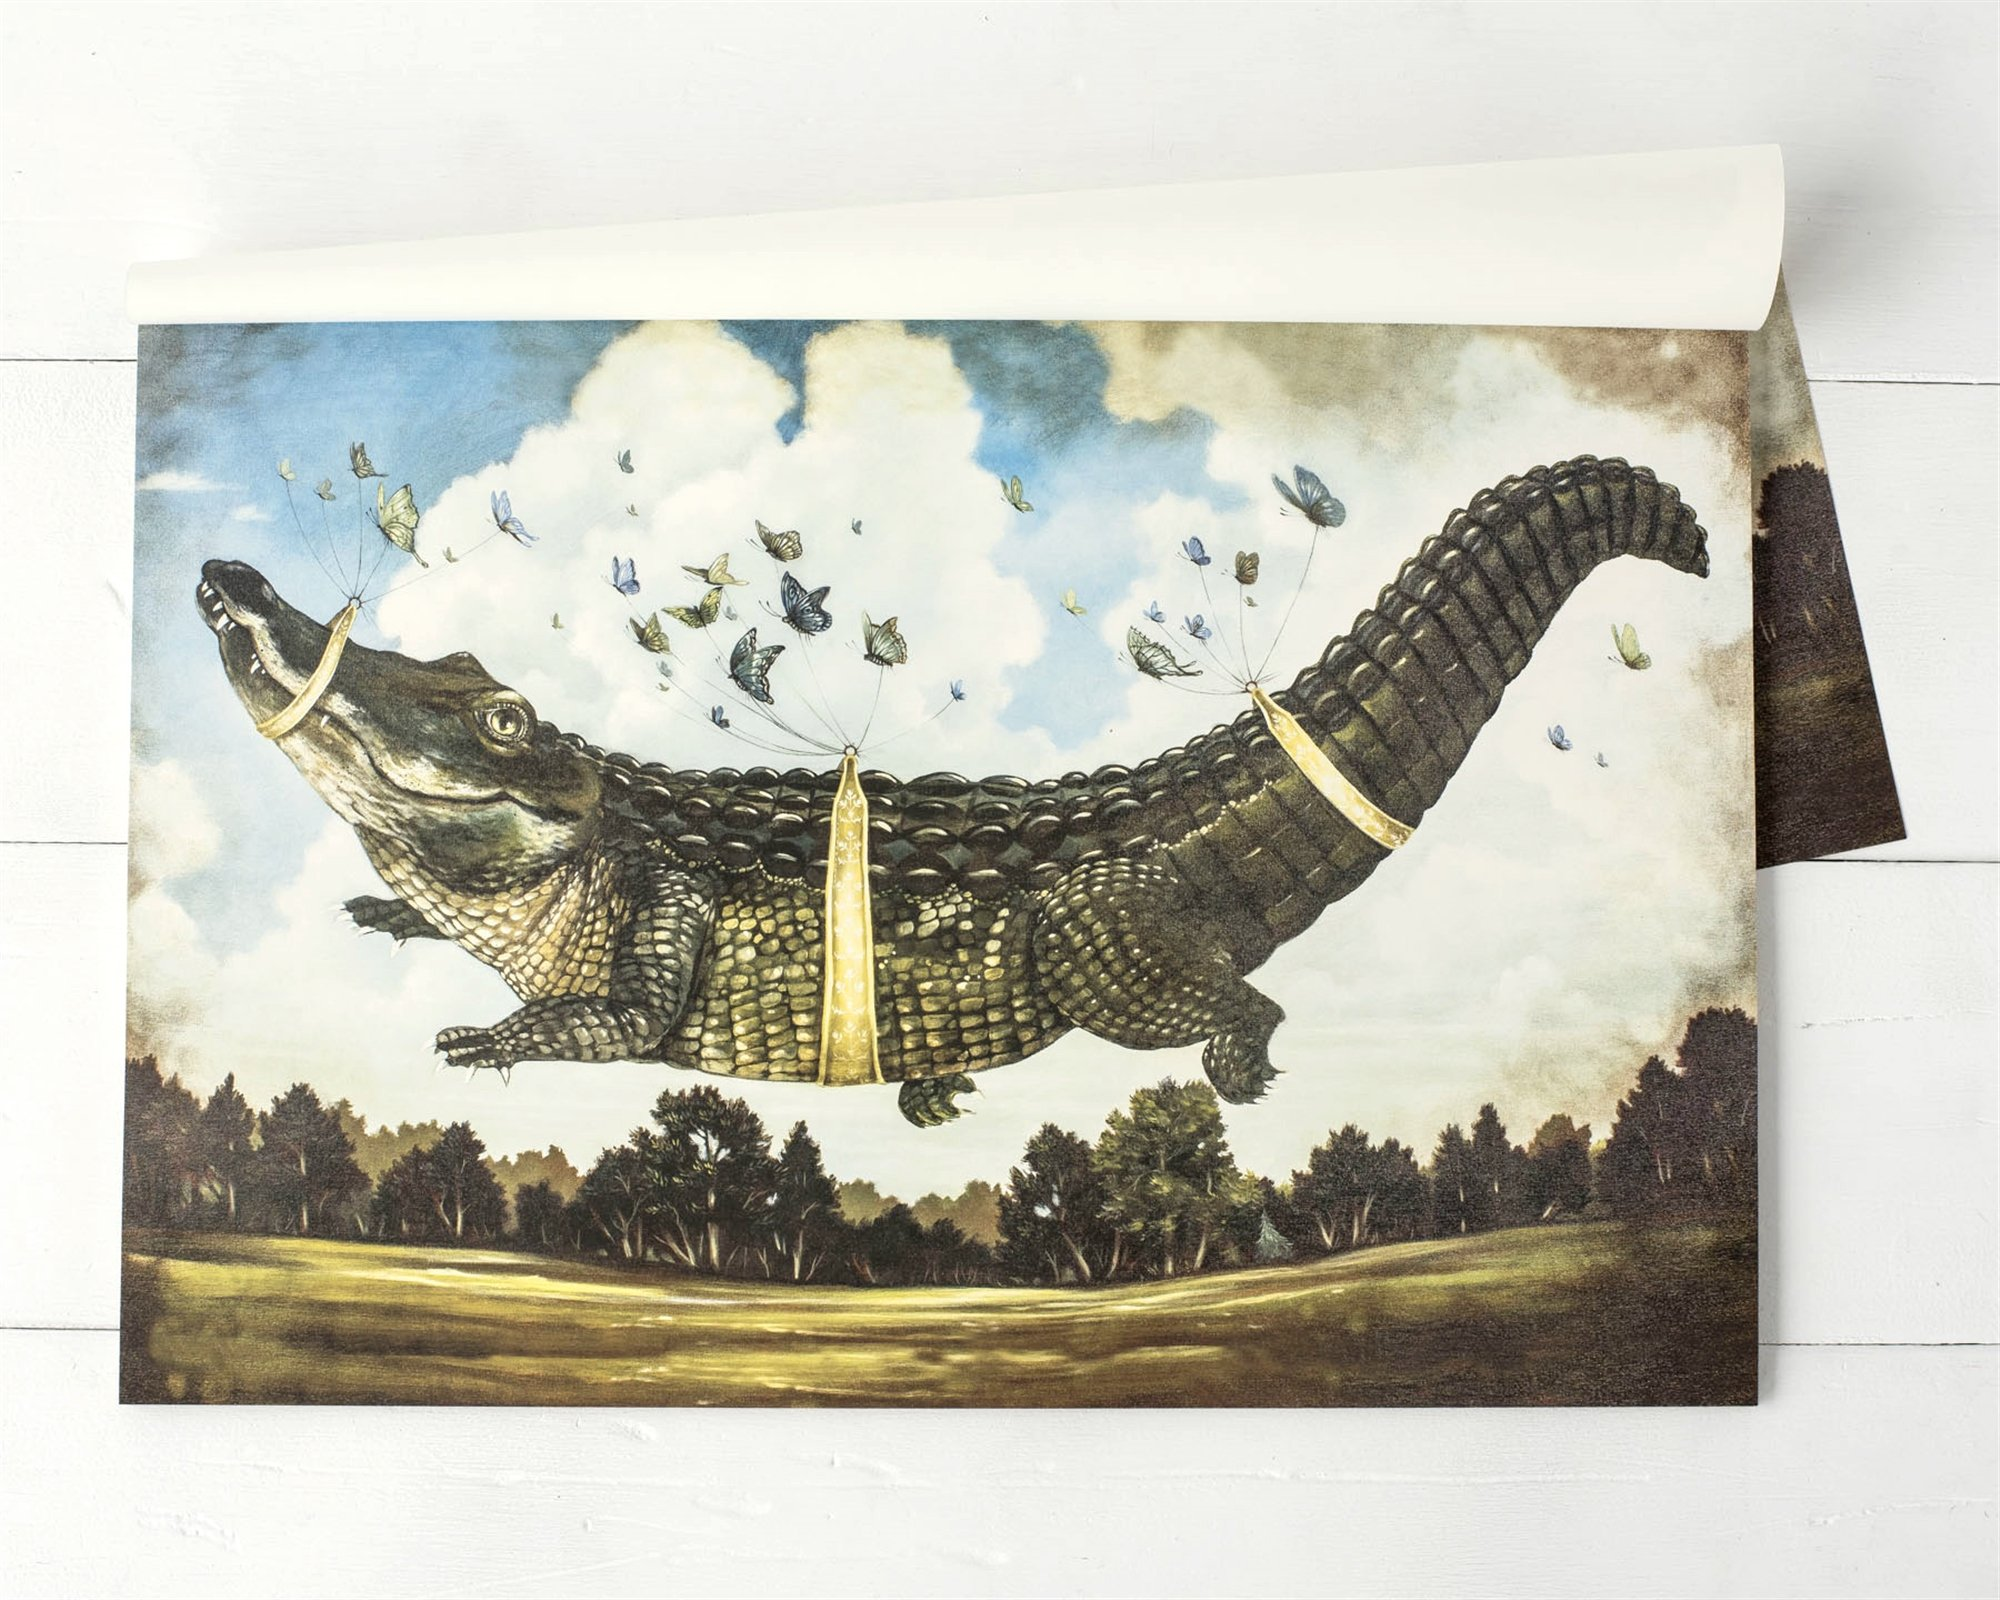 Hester & Cook Paper Placemat, Pad of 30 - Alligator's Big Day